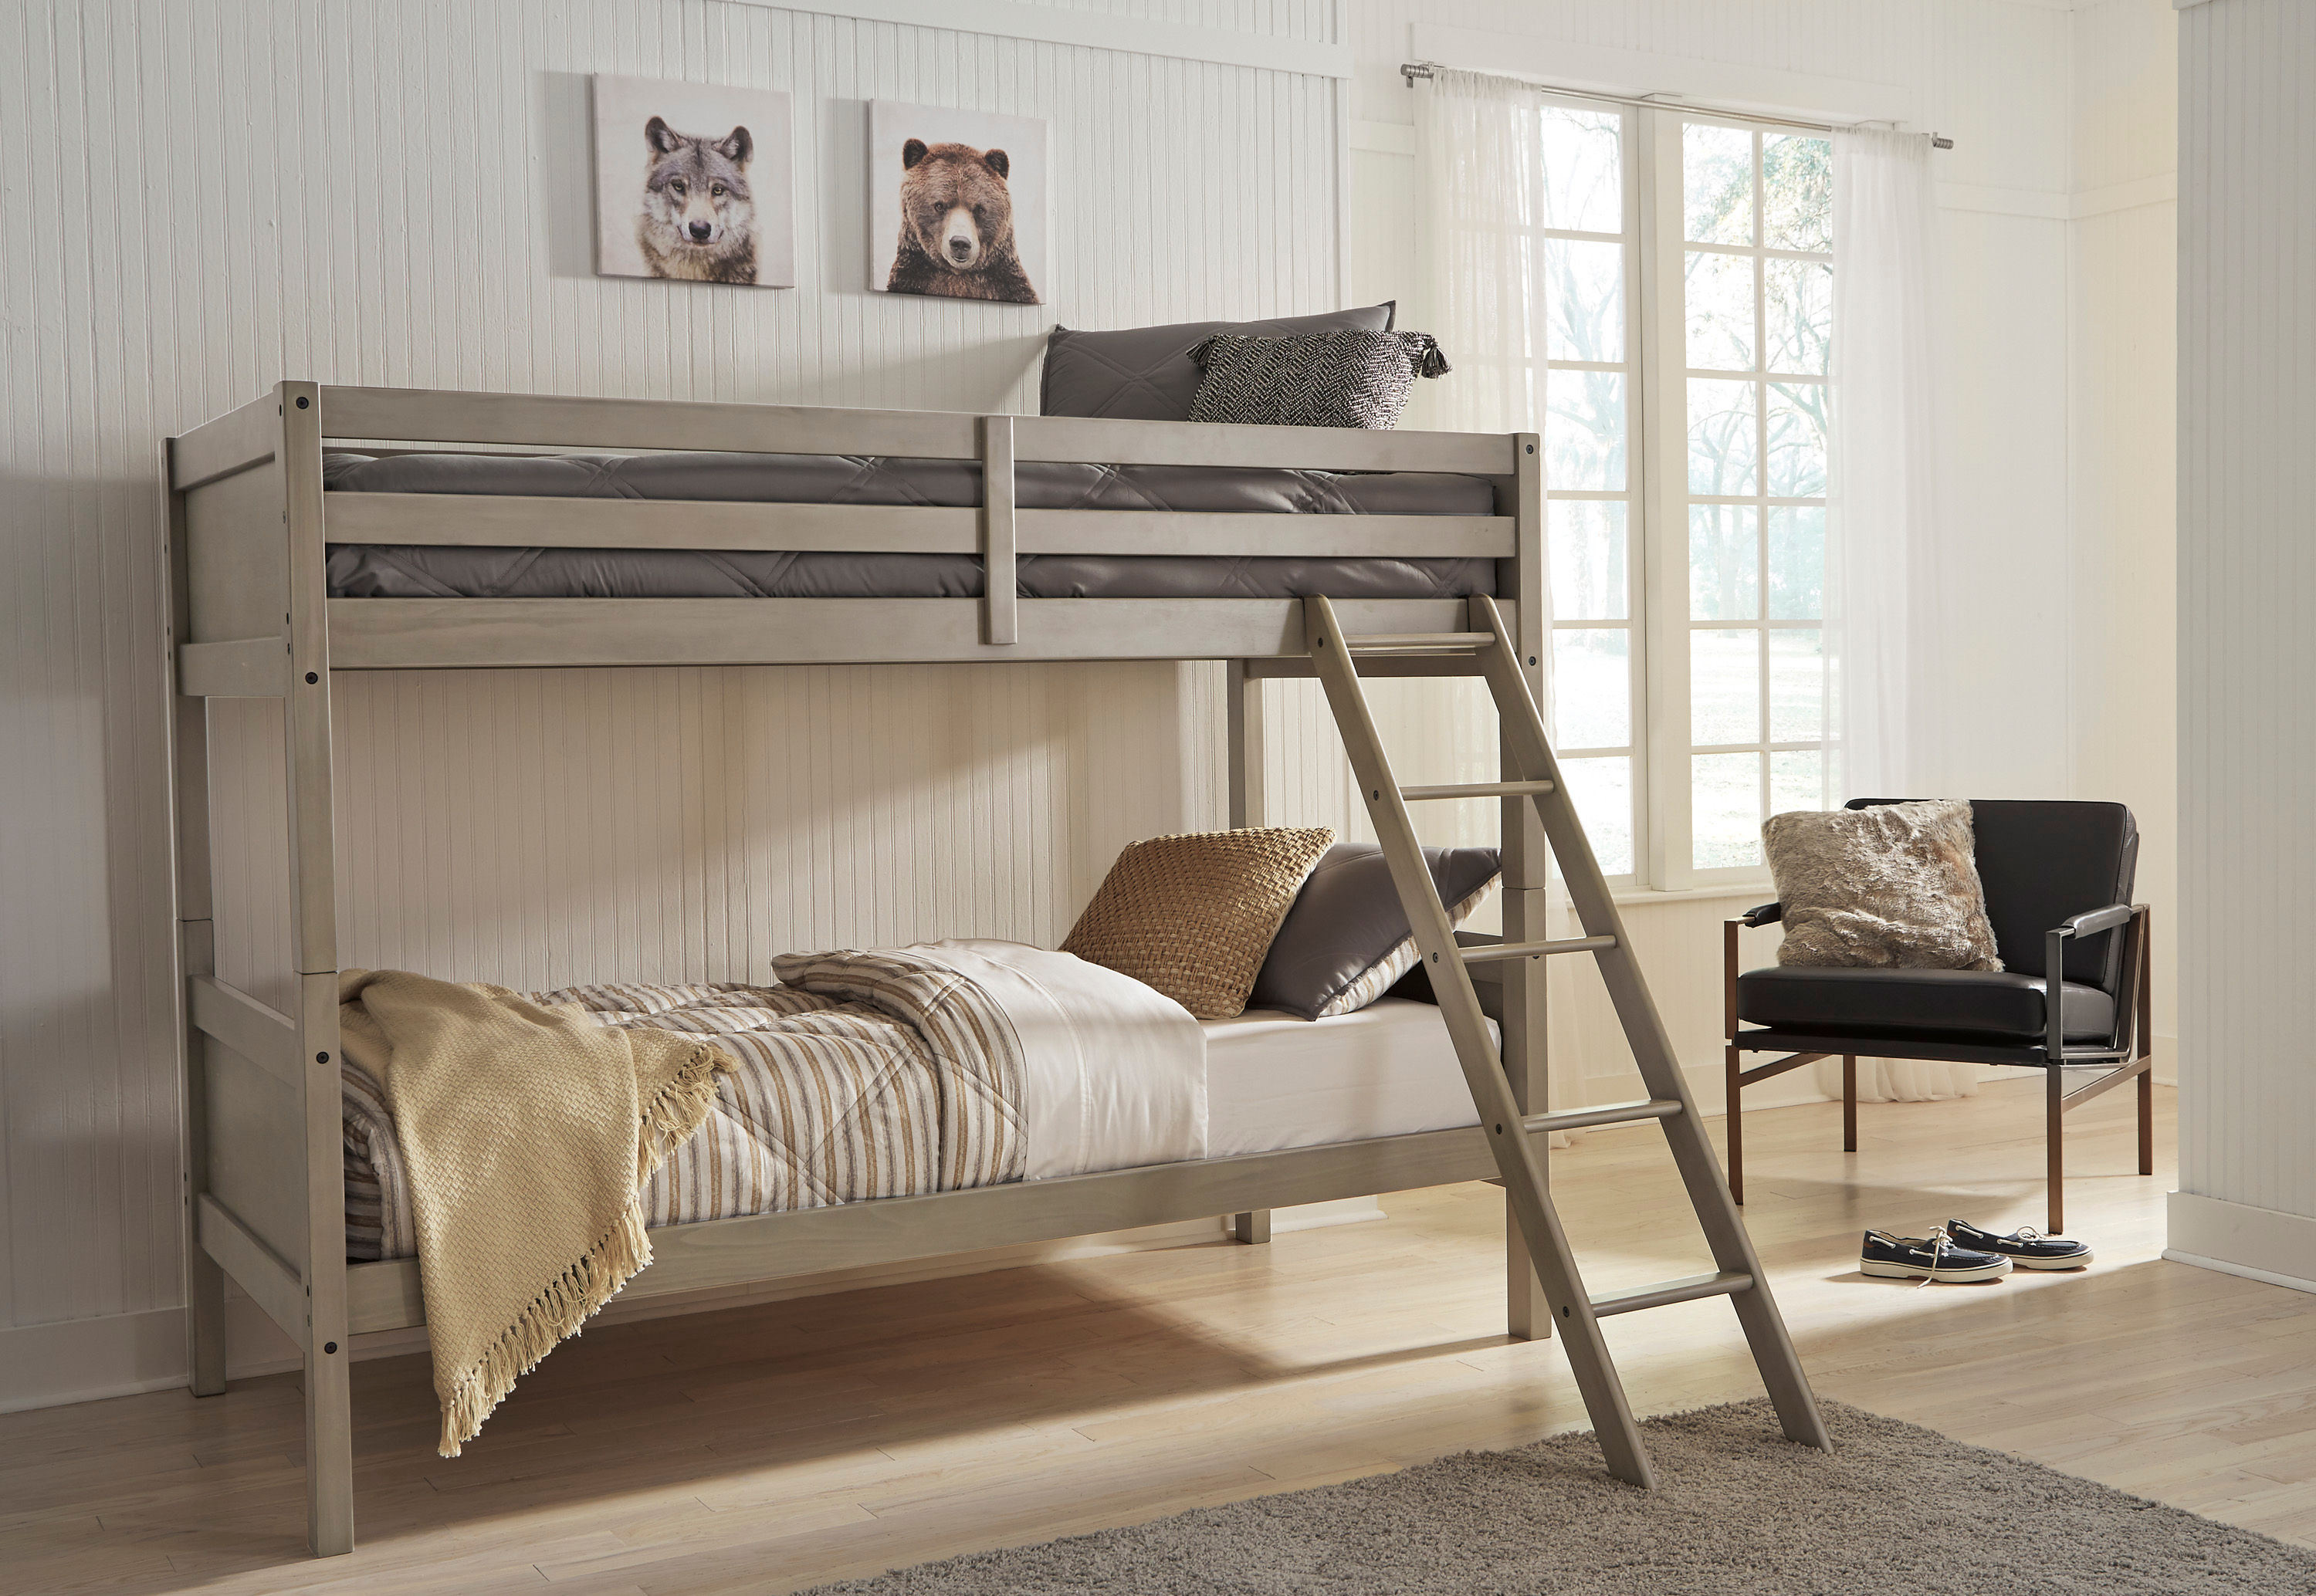 Signature Design By Ashley Lettner Twin Over Twin Bunk Bed Same Day Delivery At Rent A Center